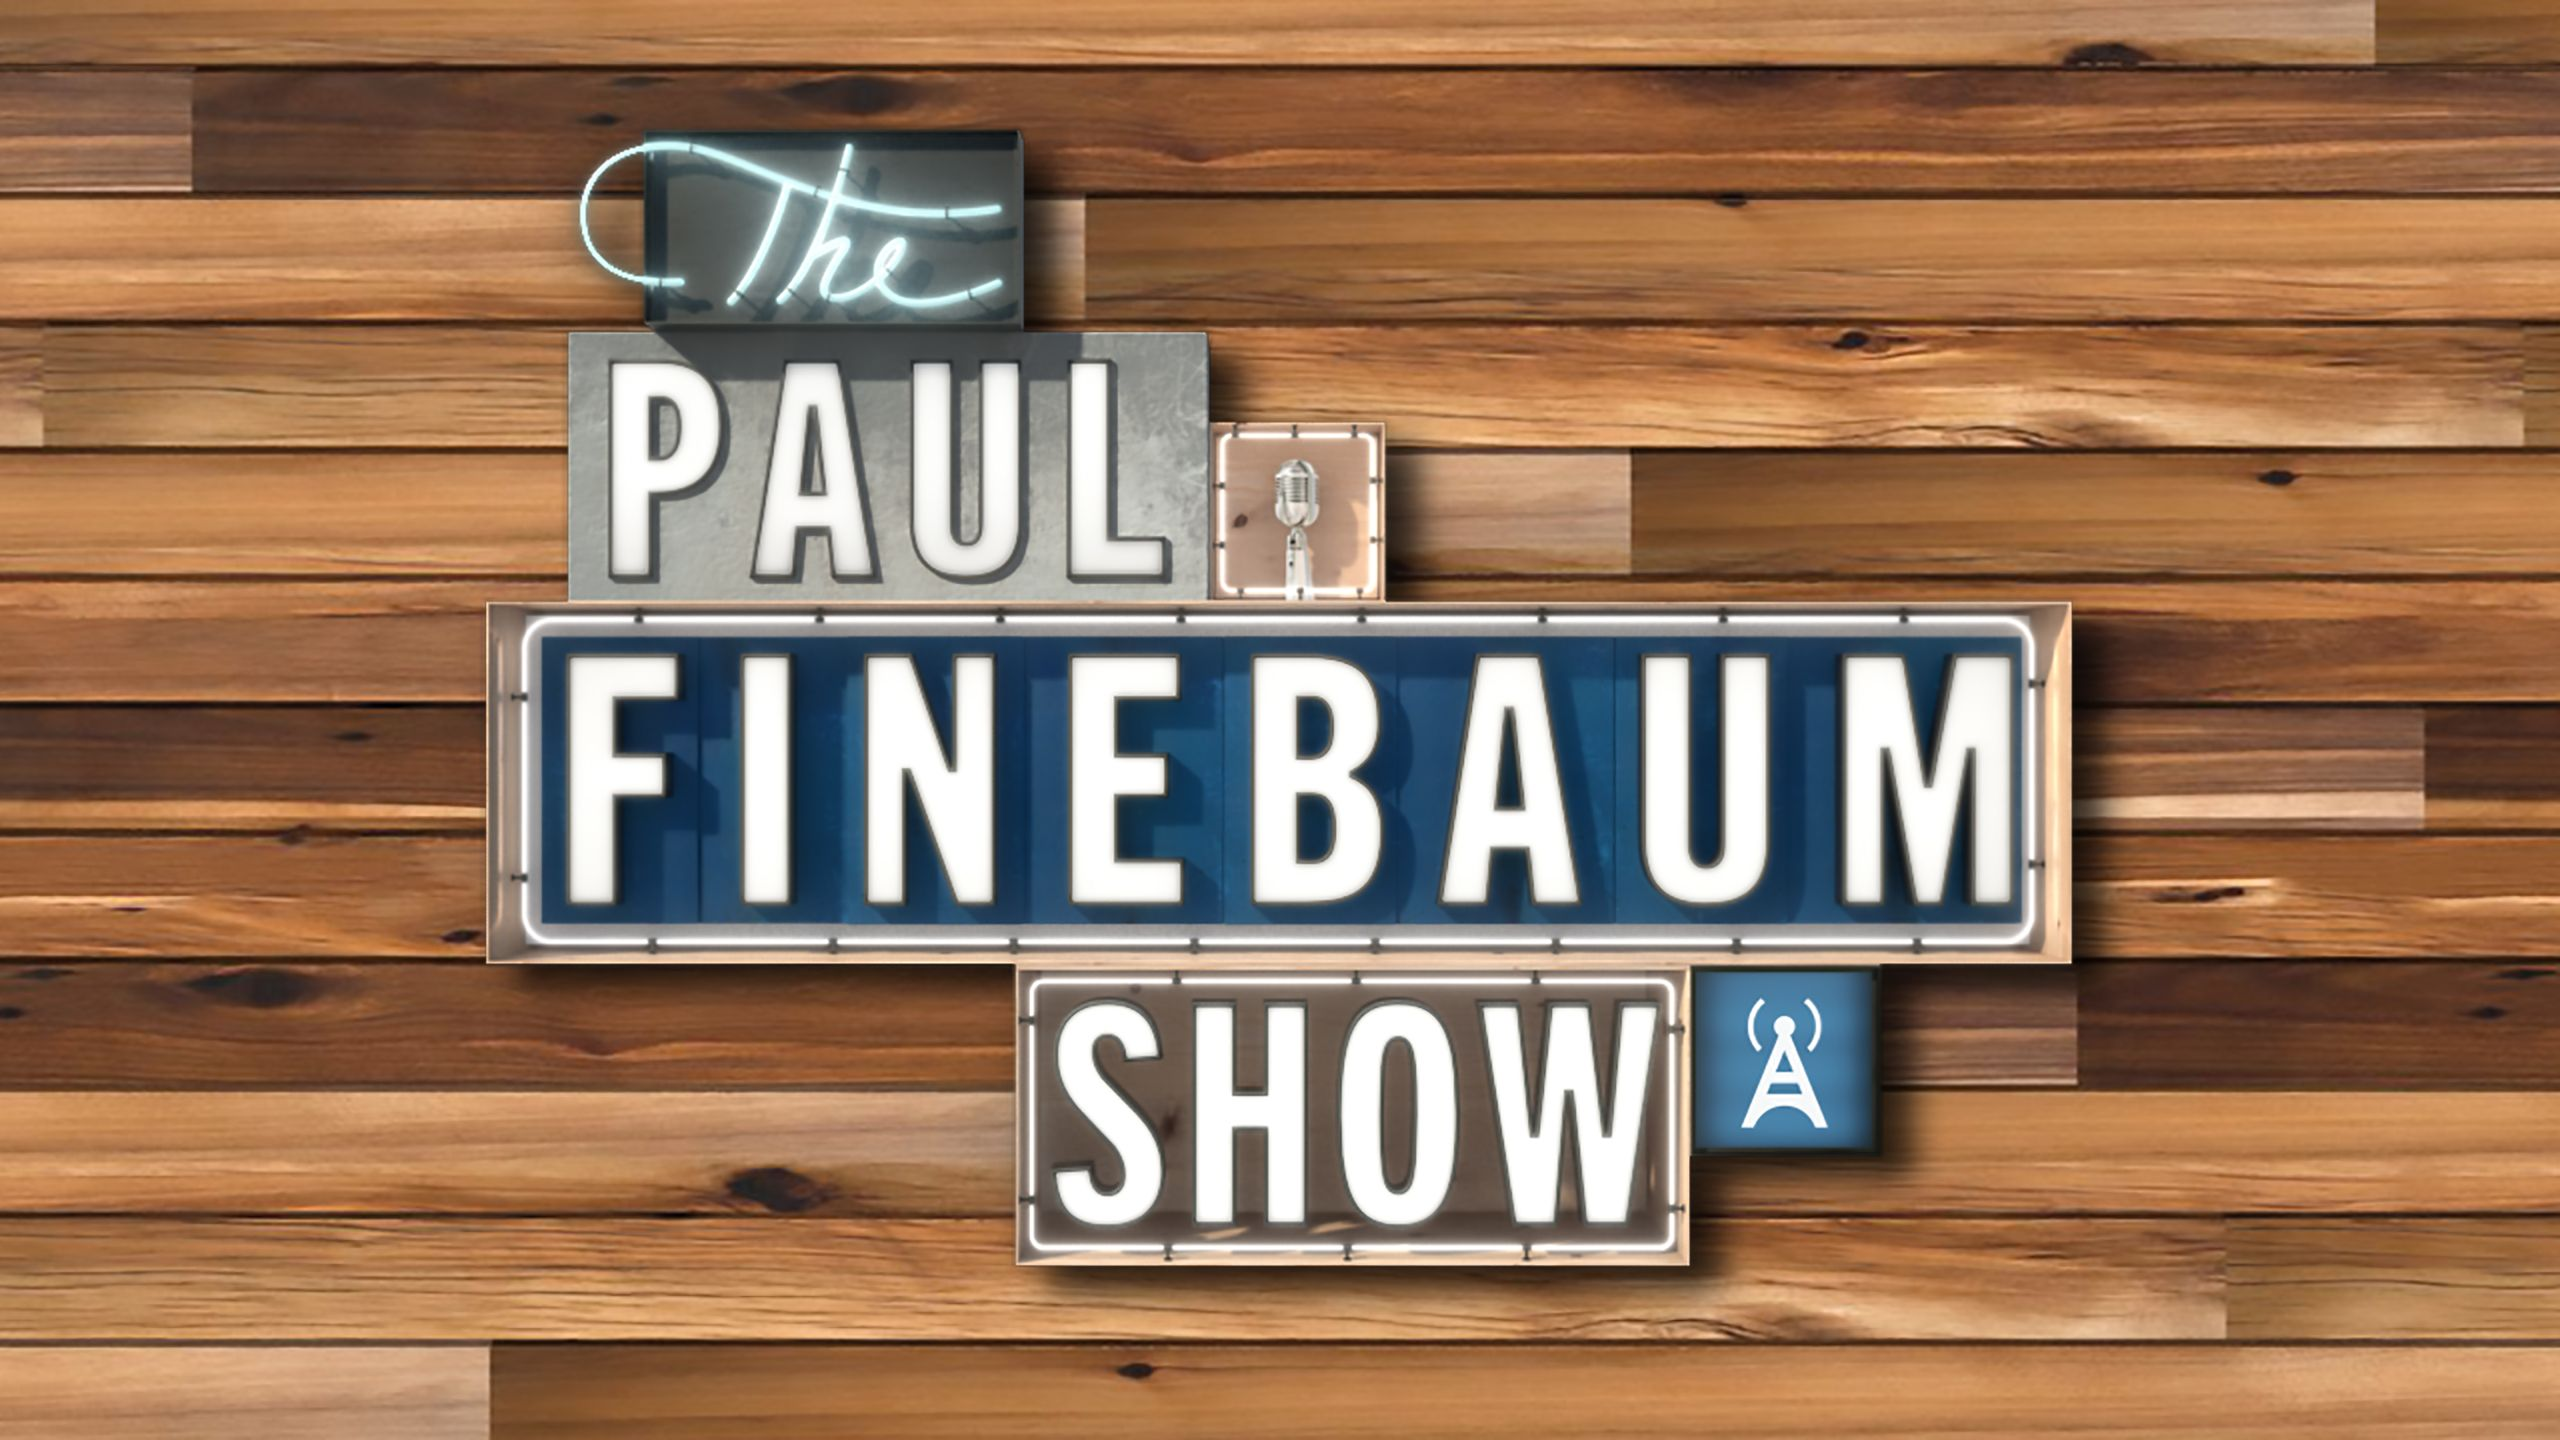 Mon, 7/16 - The Paul Finebaum Show Presented by Regions Bank